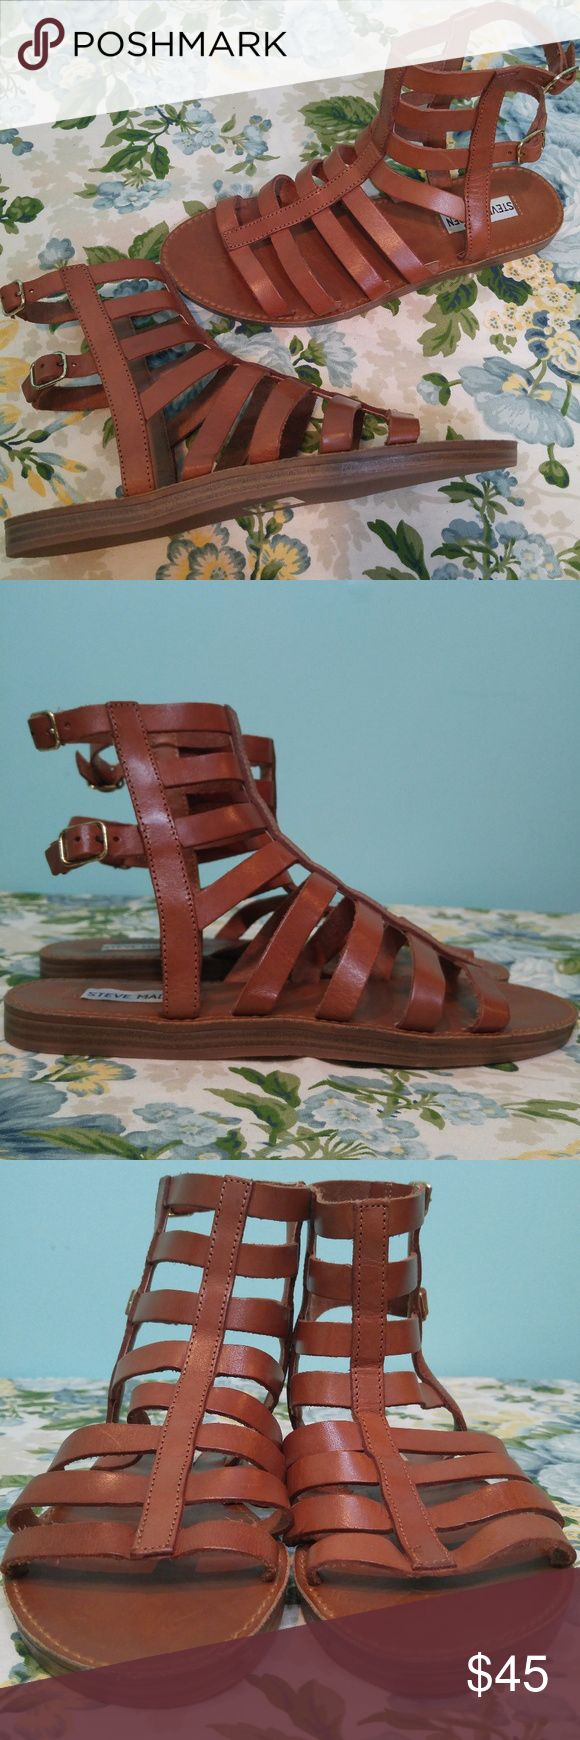 STEVE MADDEN Beeast Brown Leather Gladiator Sandal BRAND: Steve Madden  CONDITION DESCRIPTION: Gently used condition, minor wear. Please view all pictures for more details.  SIZE: Women's 8 8M   MEASUREMENTS (approximate):  Heel height – ¼ inch  STYLE: 'Beeast', side buckle closure  COLORS: Brown Colors shown in pictures may vary slightly from the actual item, due to different lighting and/or screen resolutions.   MATERIALS: Leather upper, rubber outsoles  STORAGE ENVIRONMENT: Smoke-free…